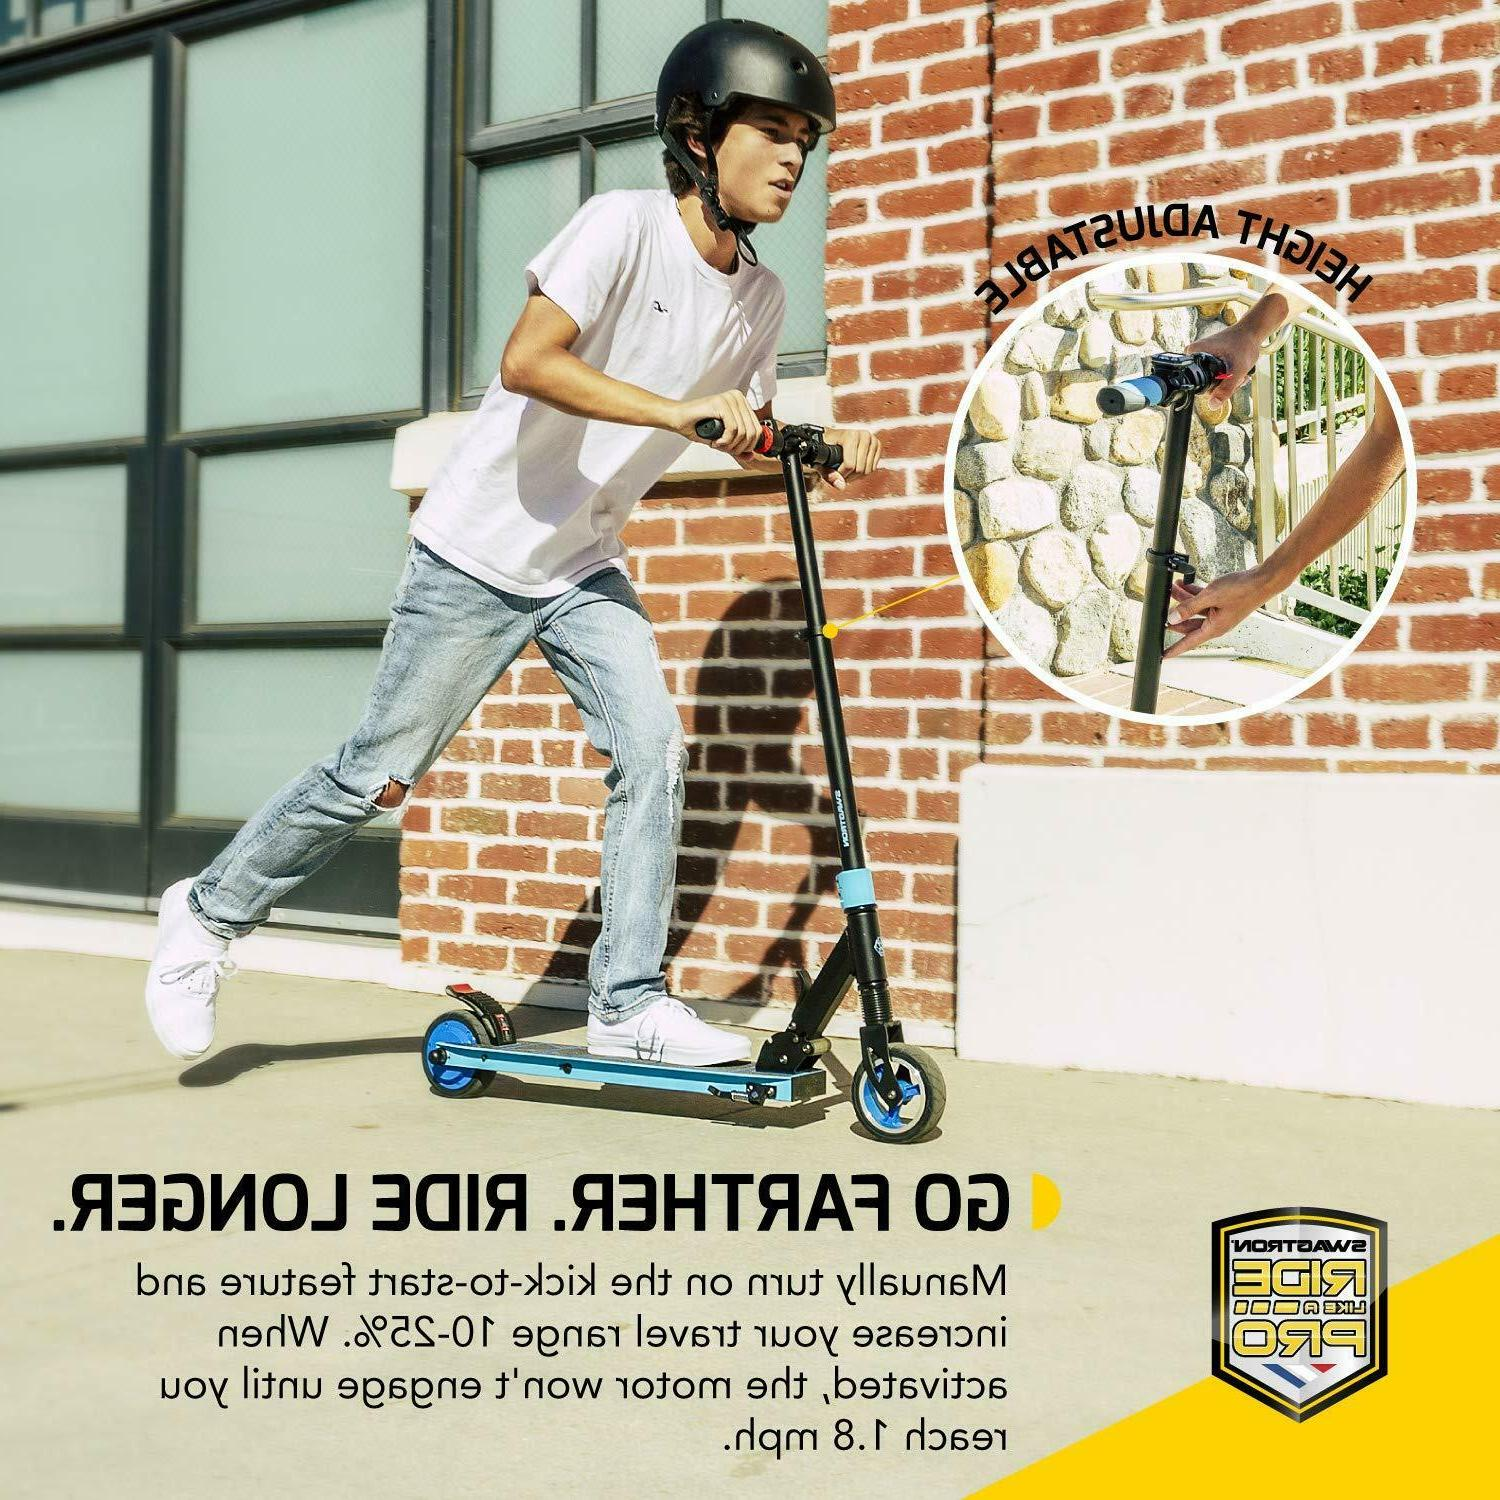 Swagtron Electric Scooter Teens Cruise Quiet